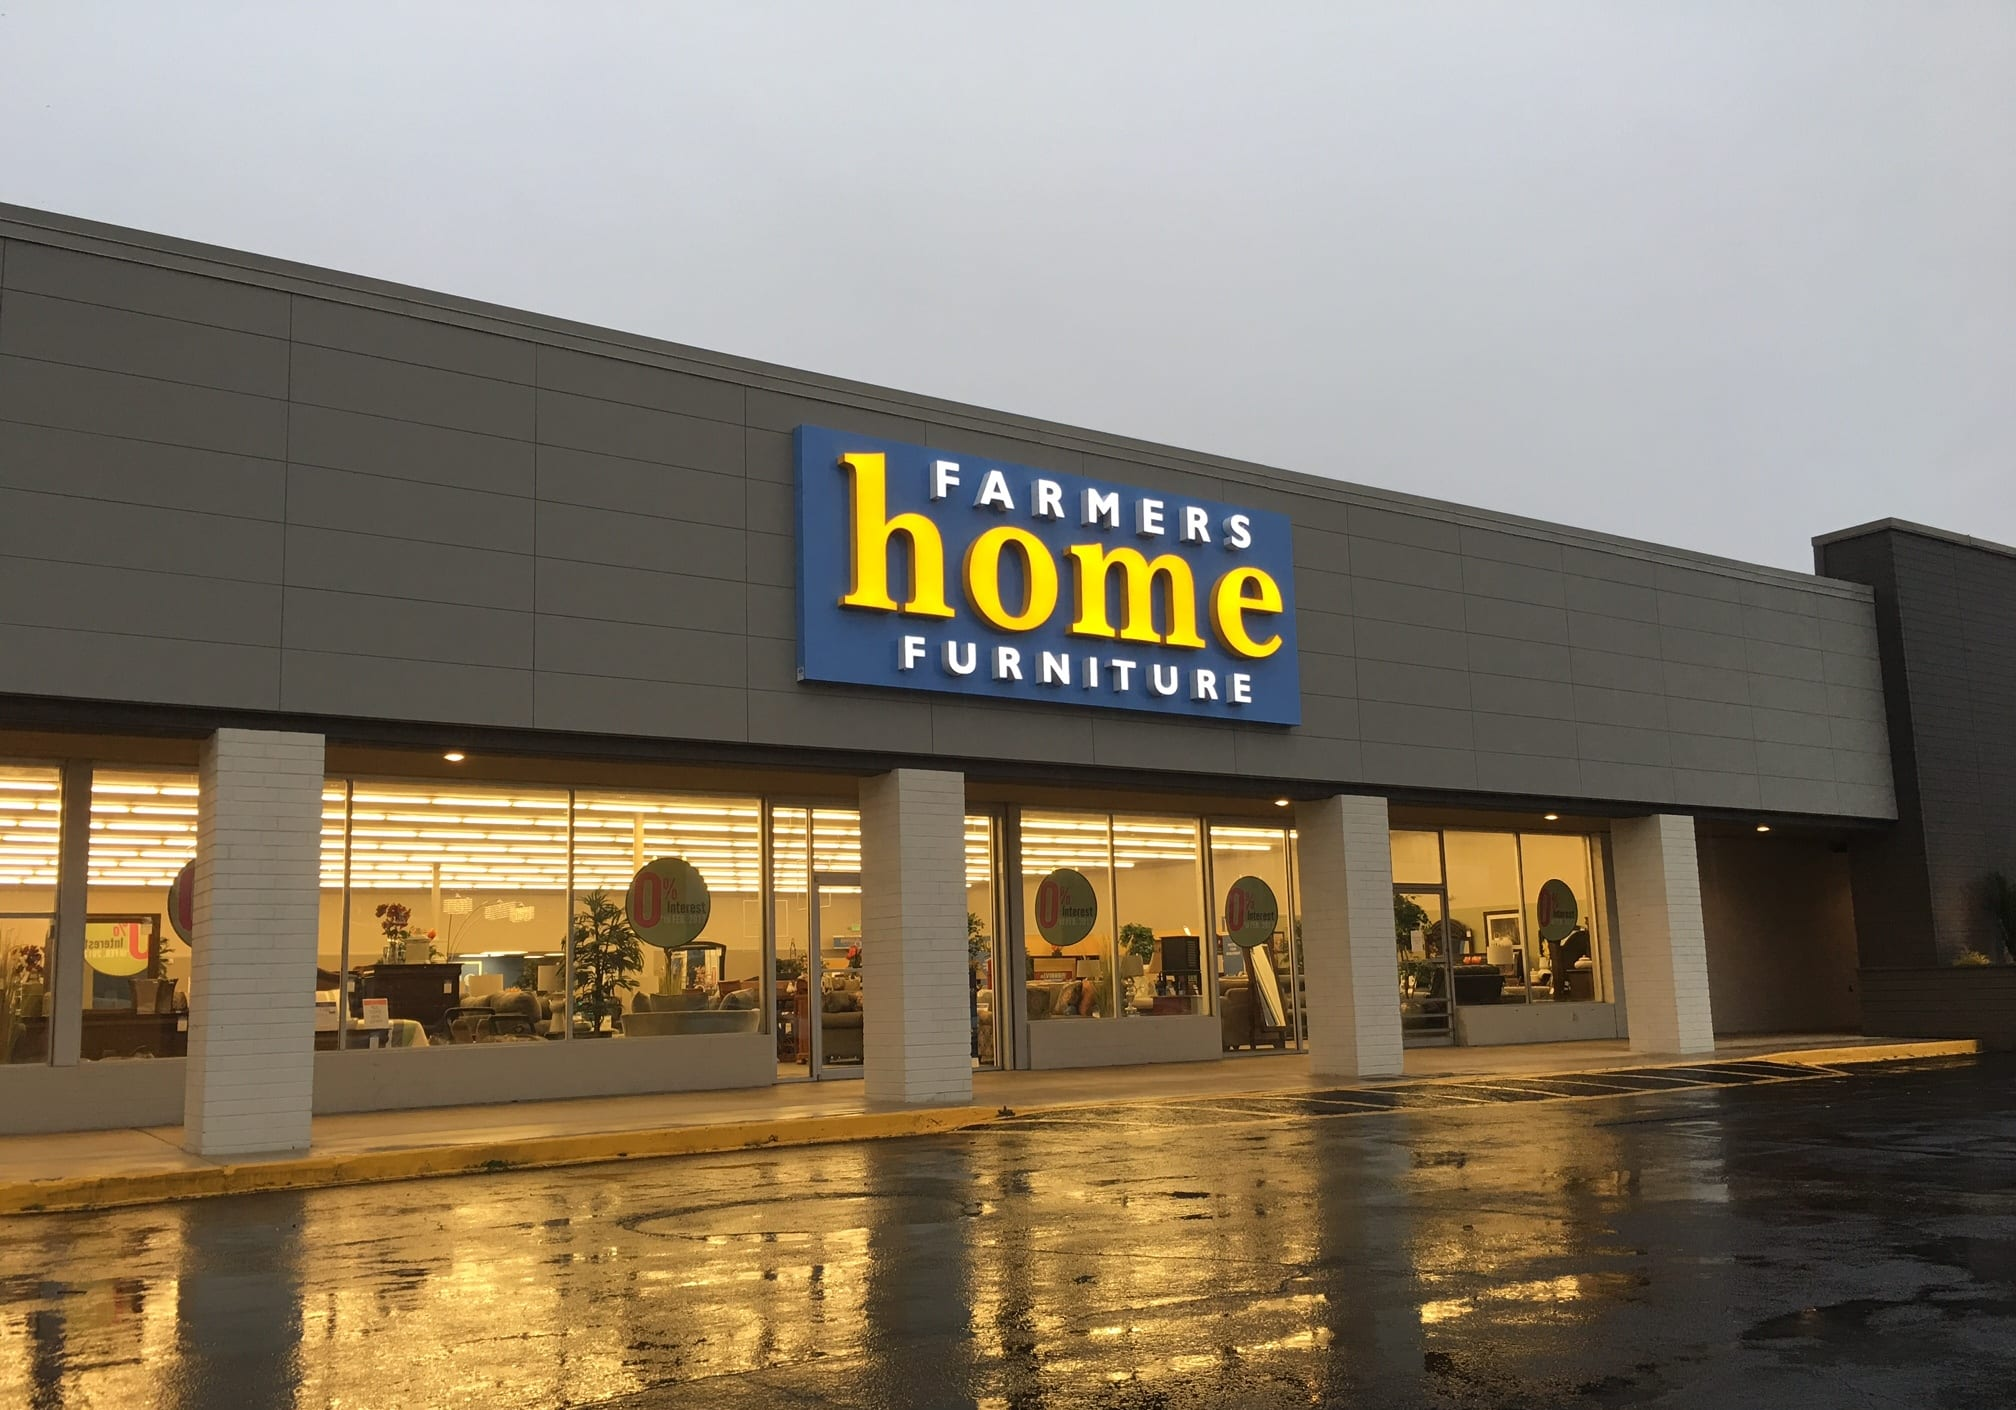 Farmers Home Furniture Leeds, AL